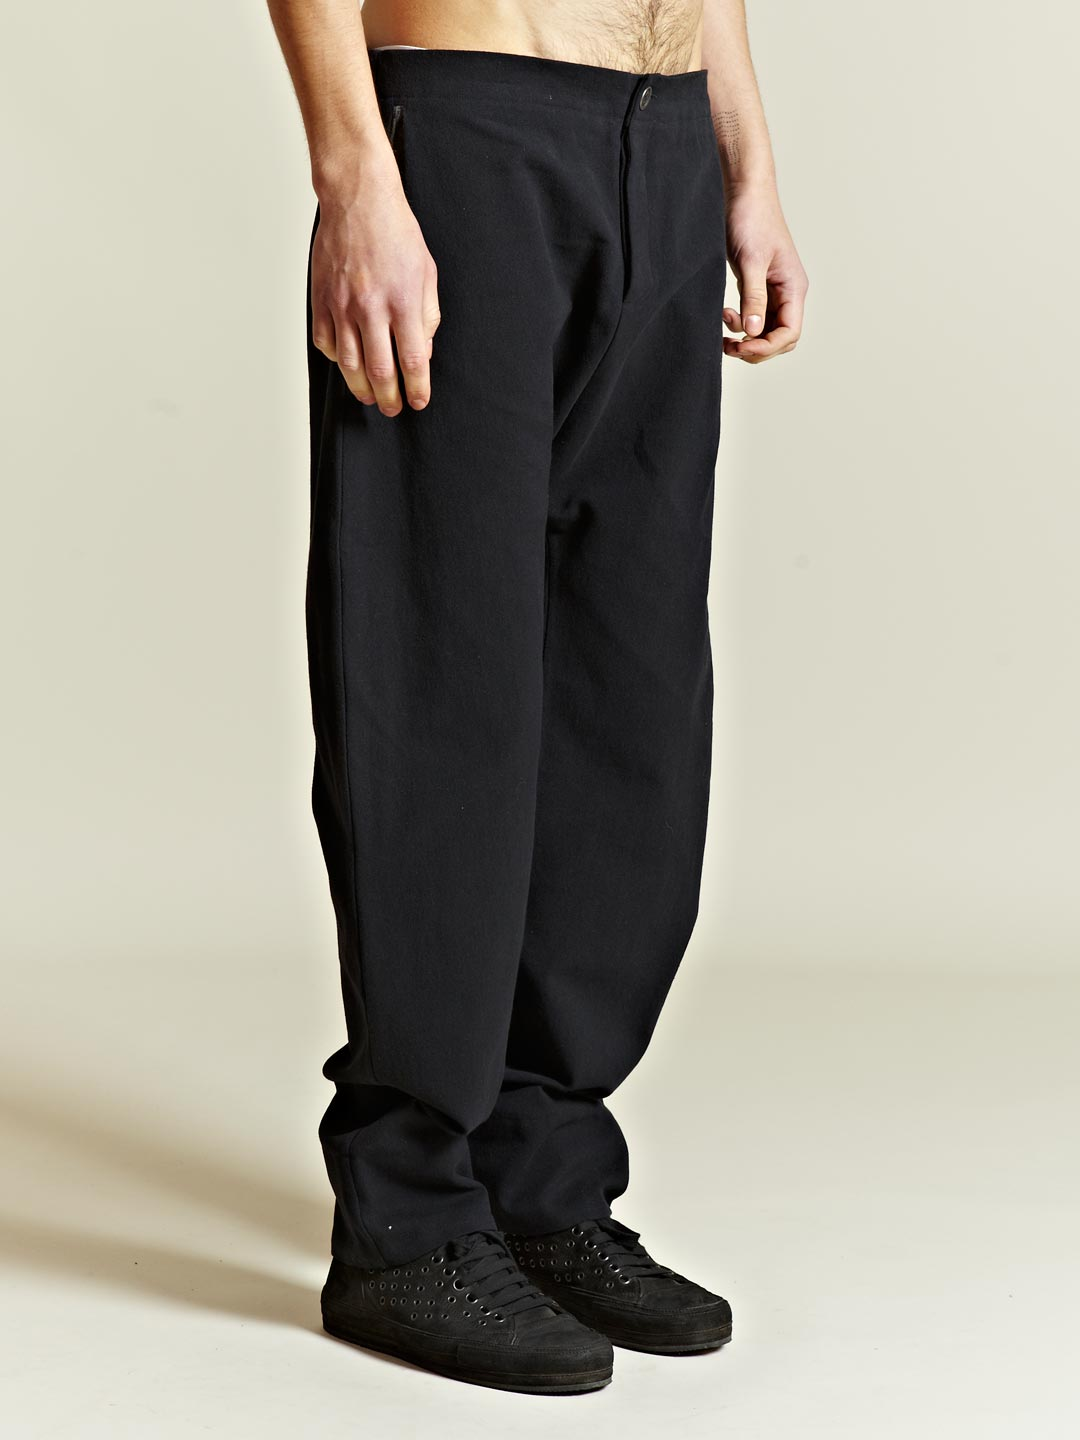 Dropsnatch Blue Black Marble: Marvielab Marvielab Mens Drop Crotch Pants In Black For